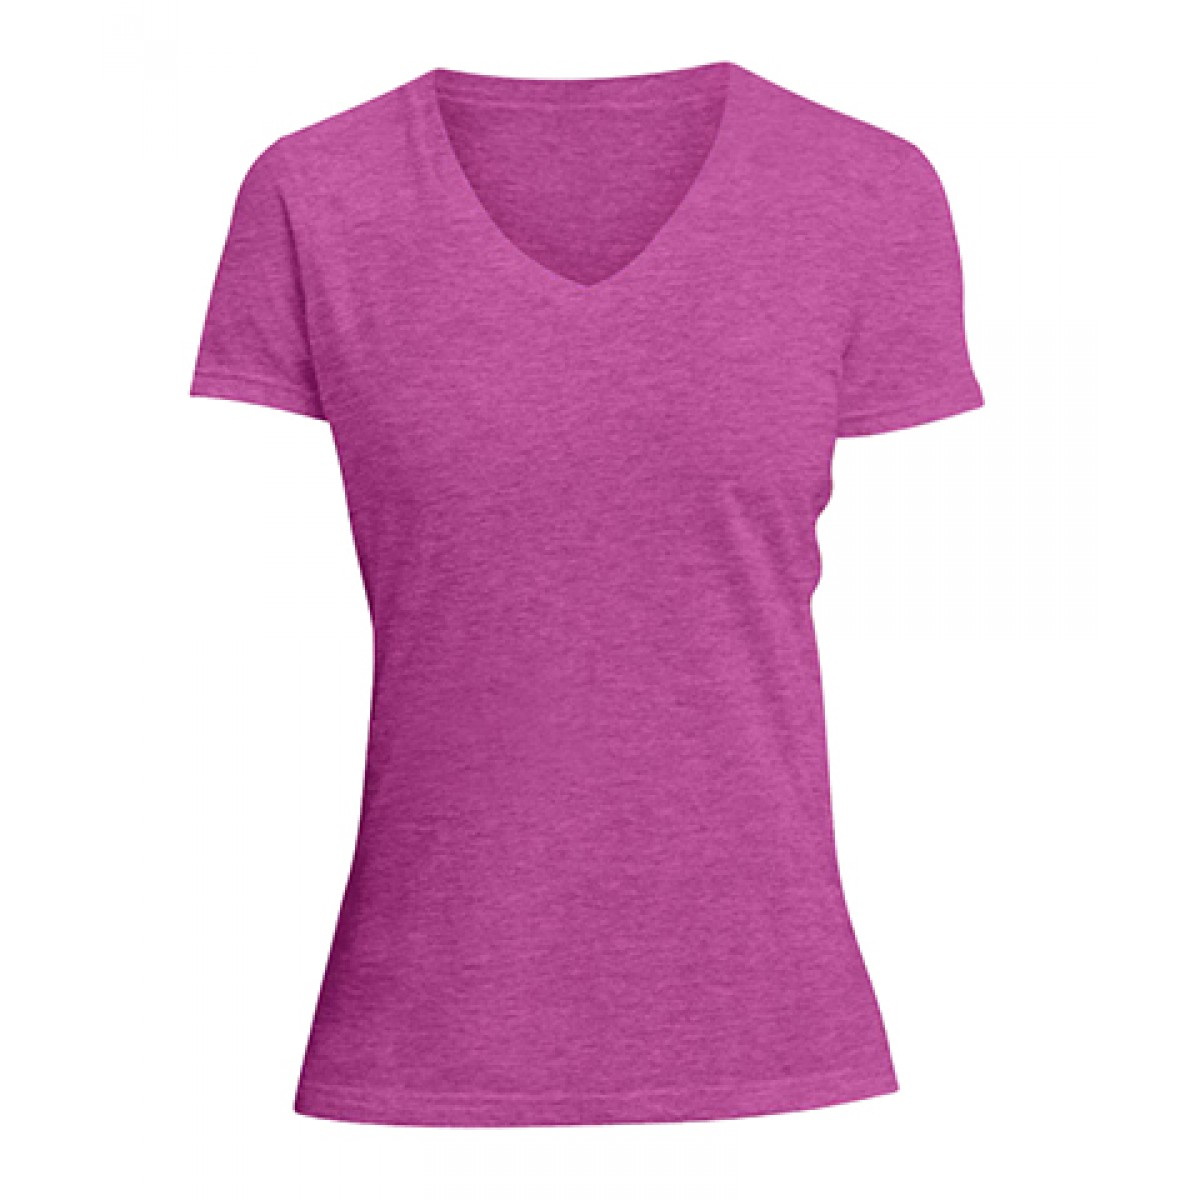 Ladies V-Neck Tee-Heathered Fuscia-XS